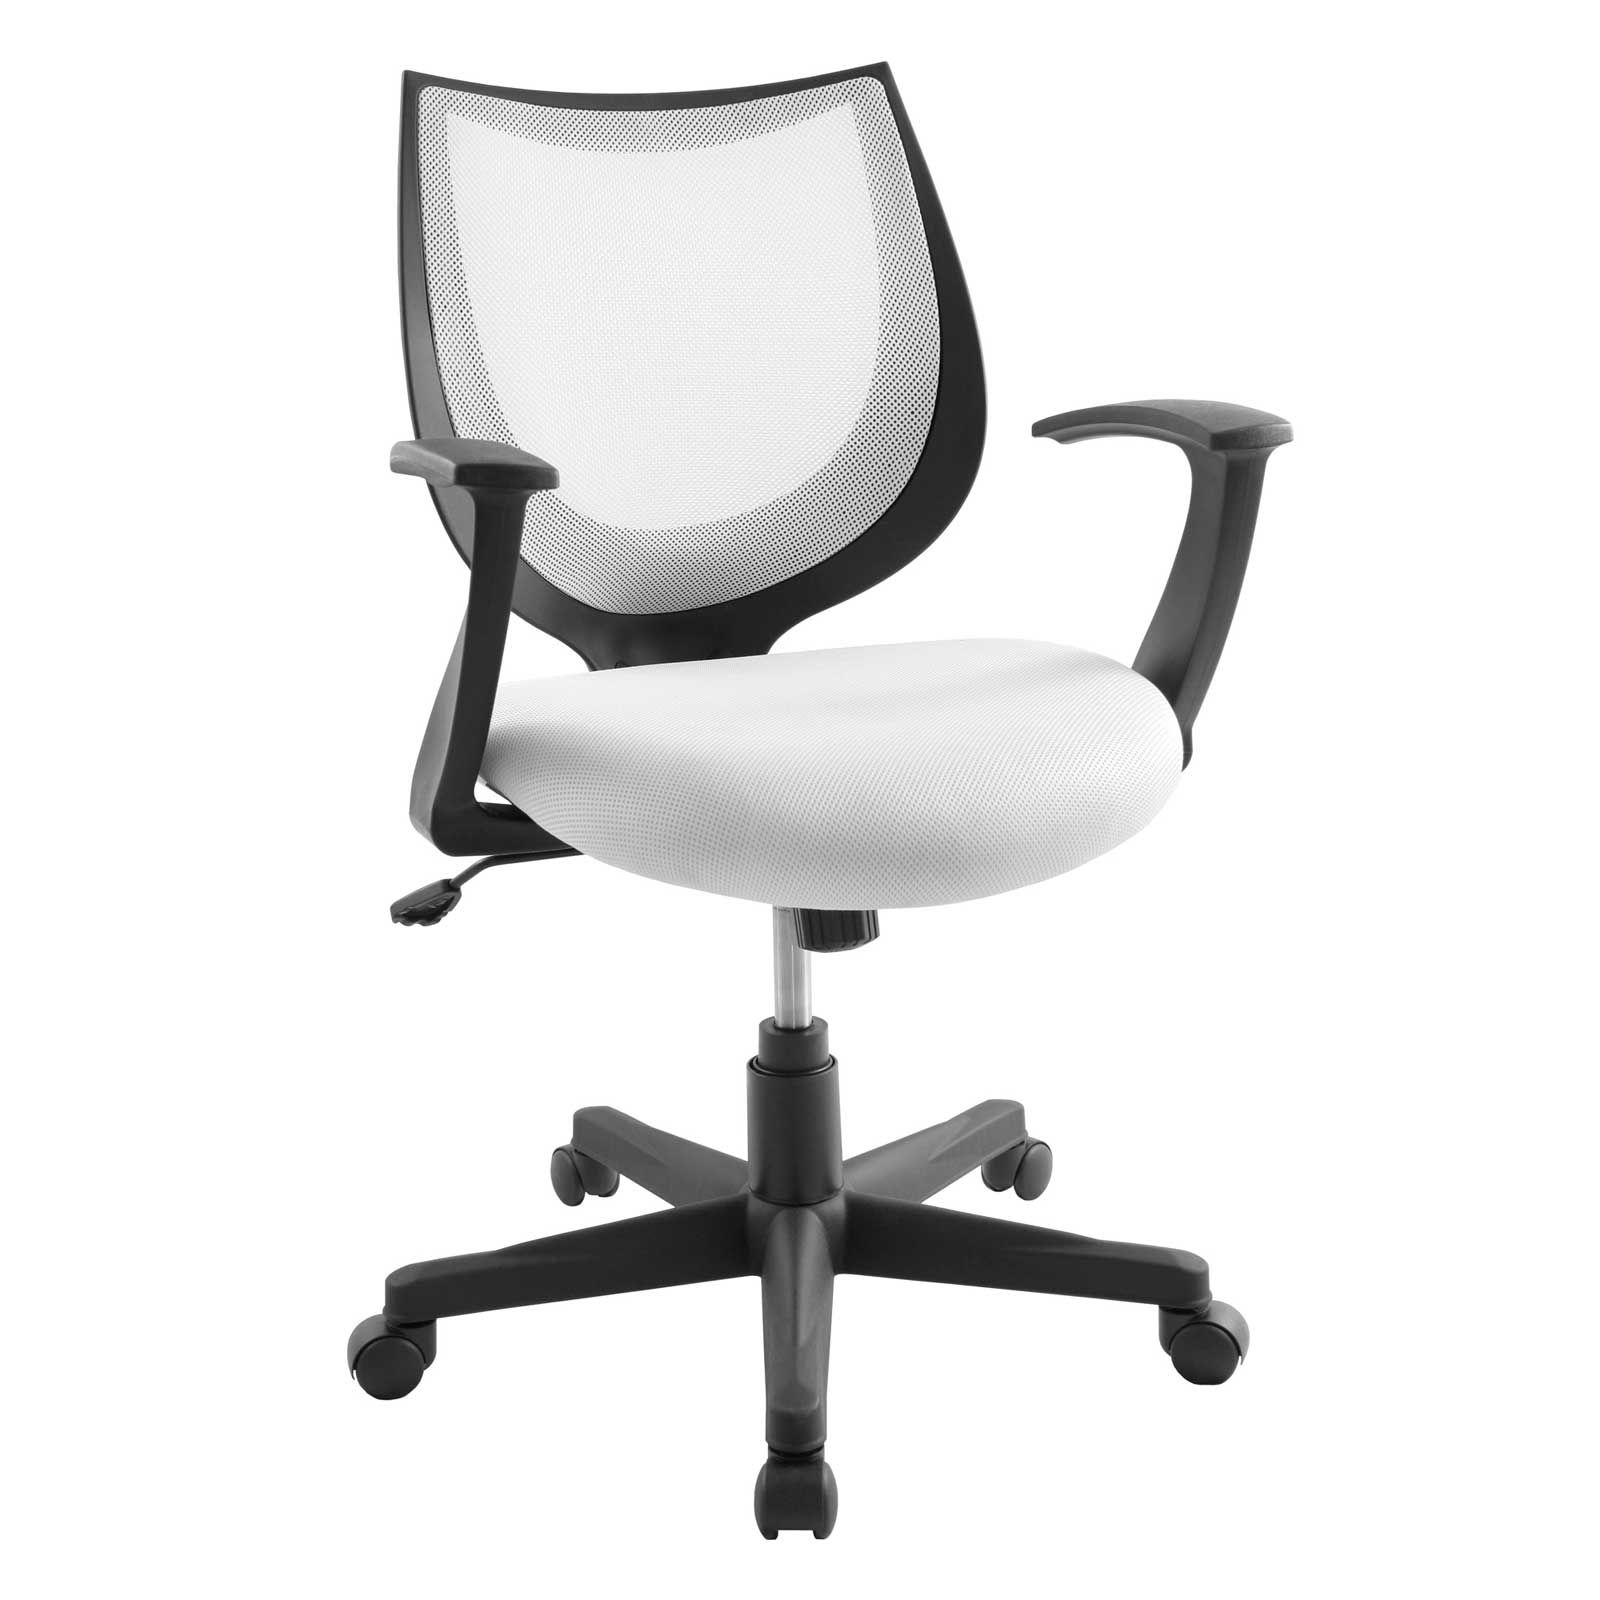 White Back Mesh Viper Arm Office Chair  White desk chair, White